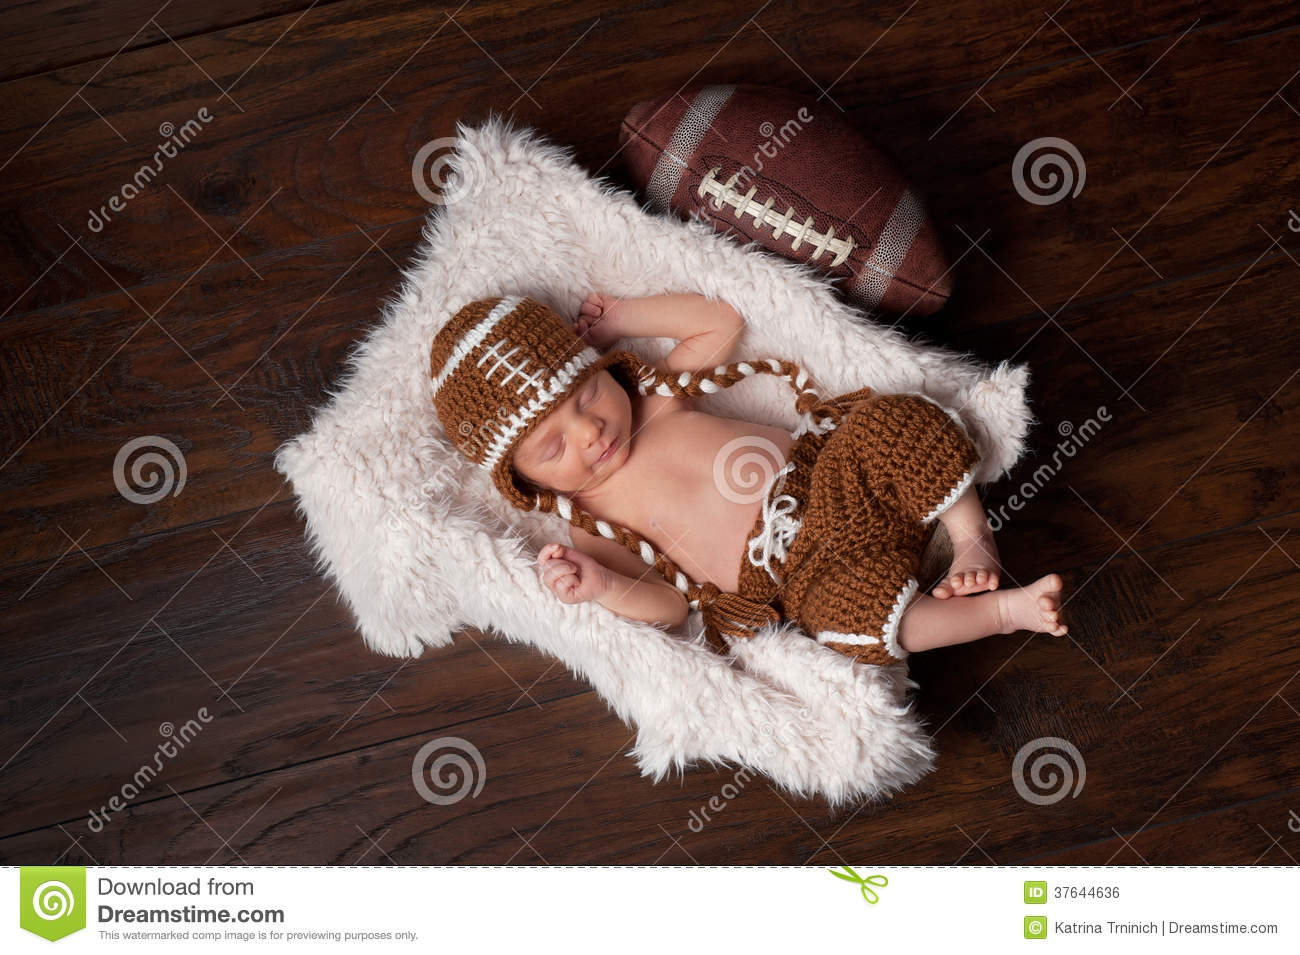 Newborn Baby Boy In Football Outfit Stock Photo Image Of Innocent Relax 37644636